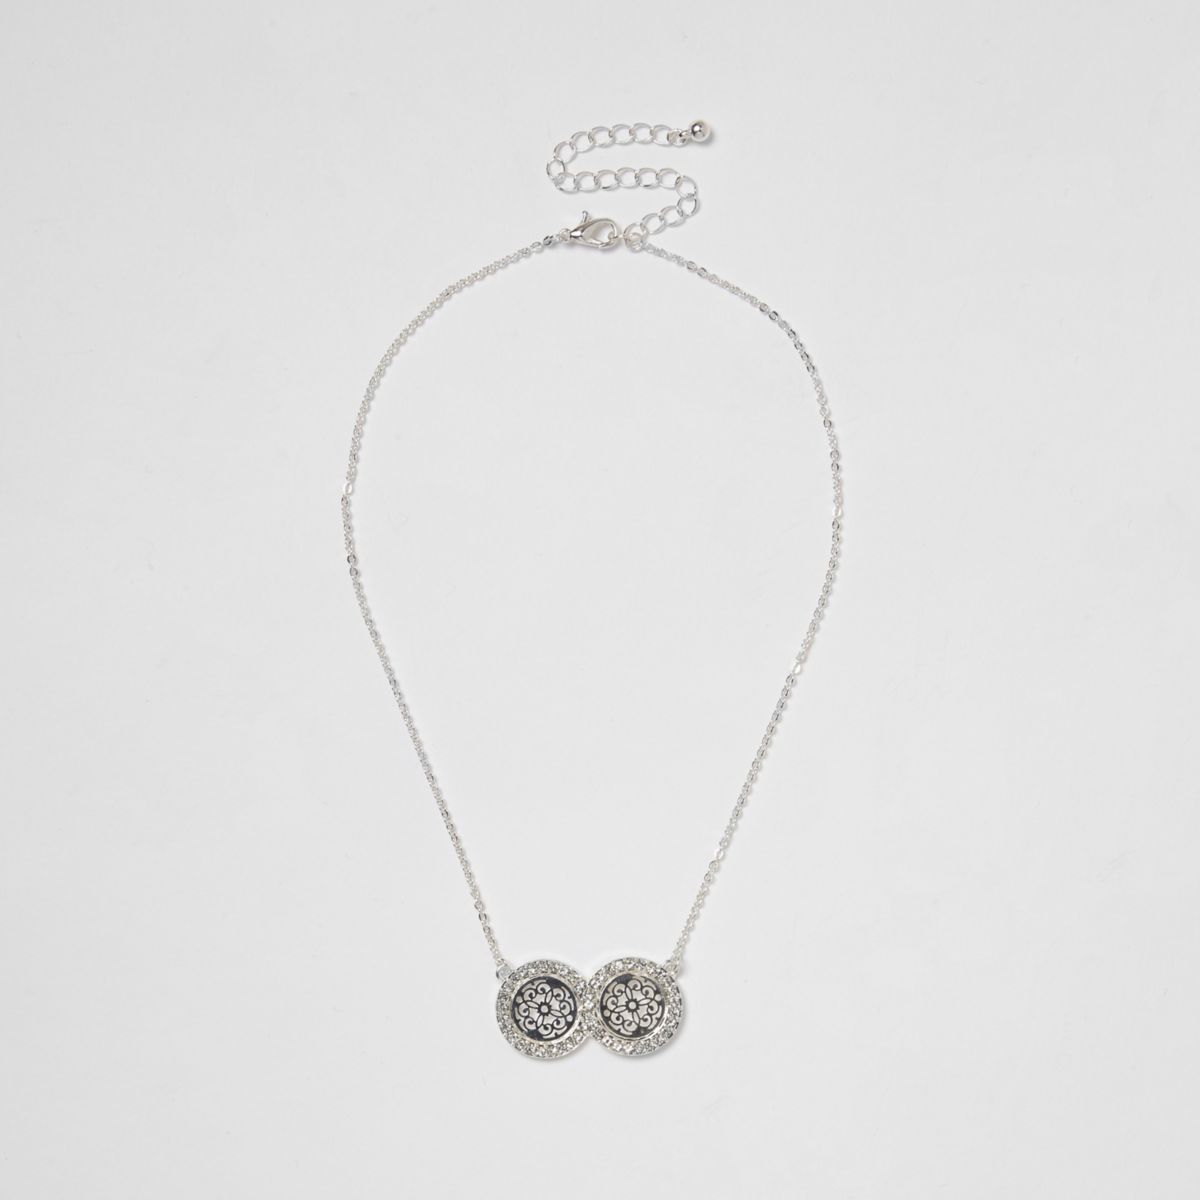 Silver tone double filigree coin necklace